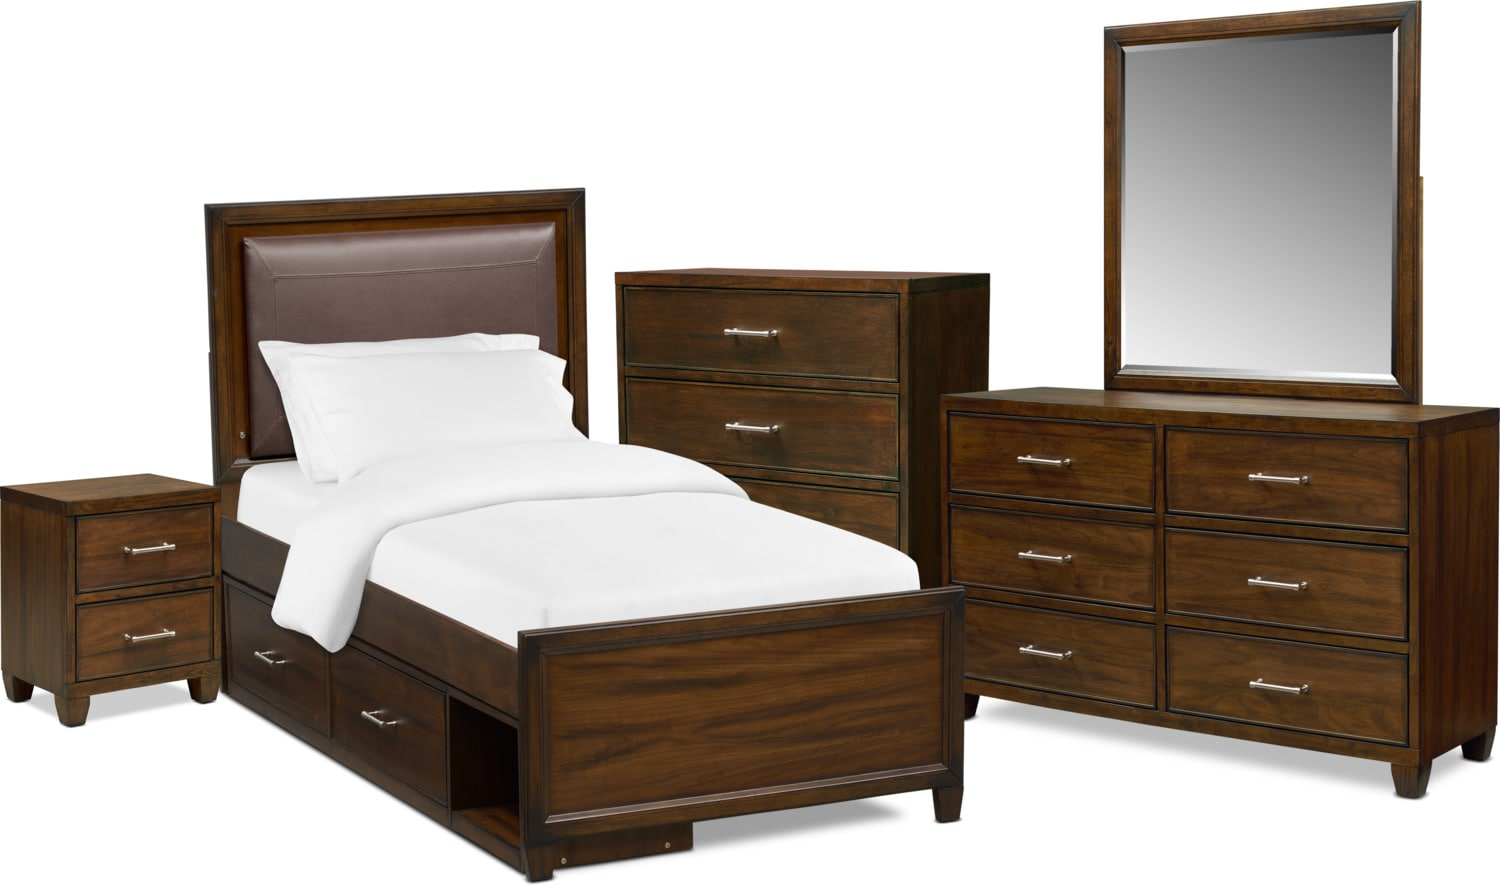 The Sullivan Youth Bedroom Collection